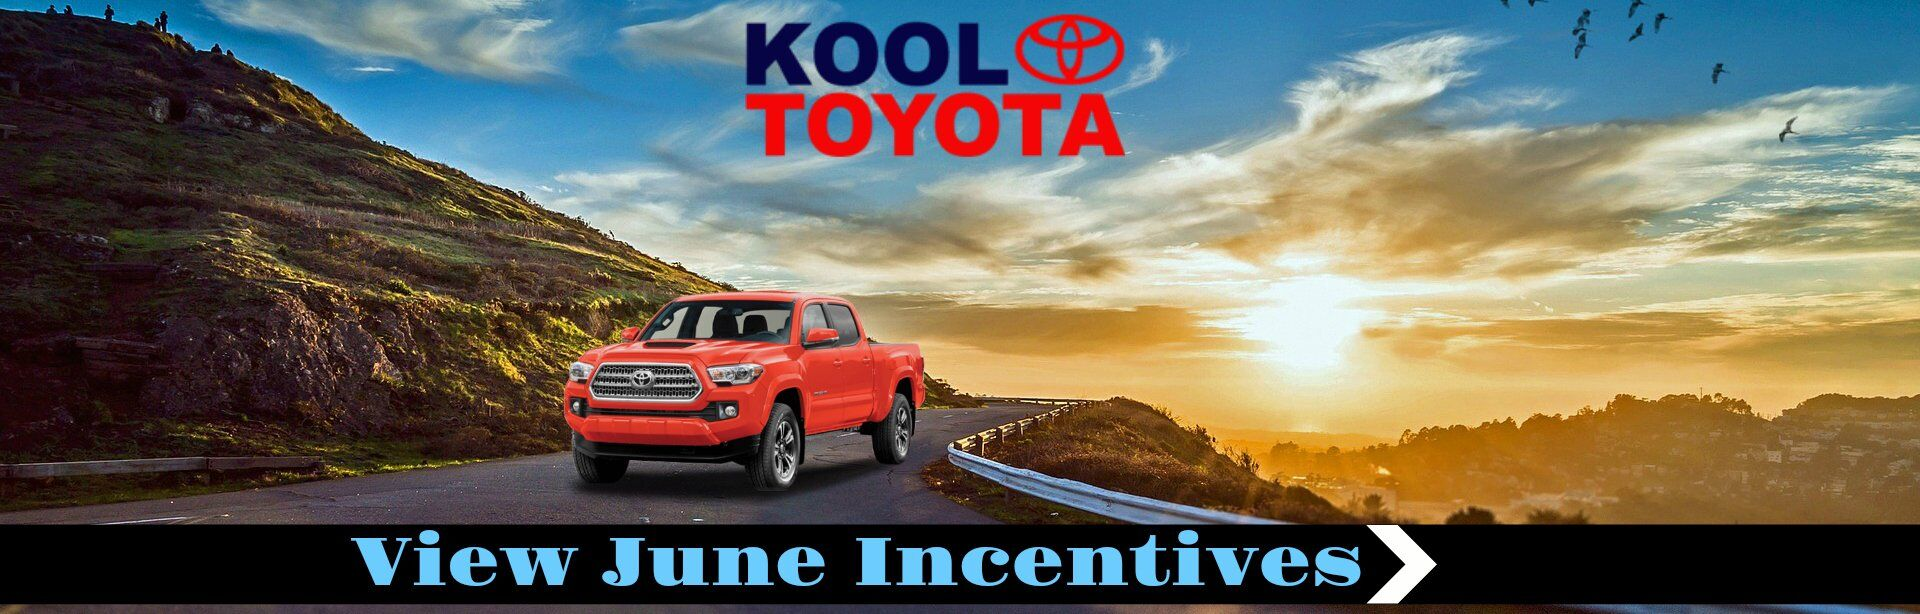 June Incentives at KOOL TOYOTA